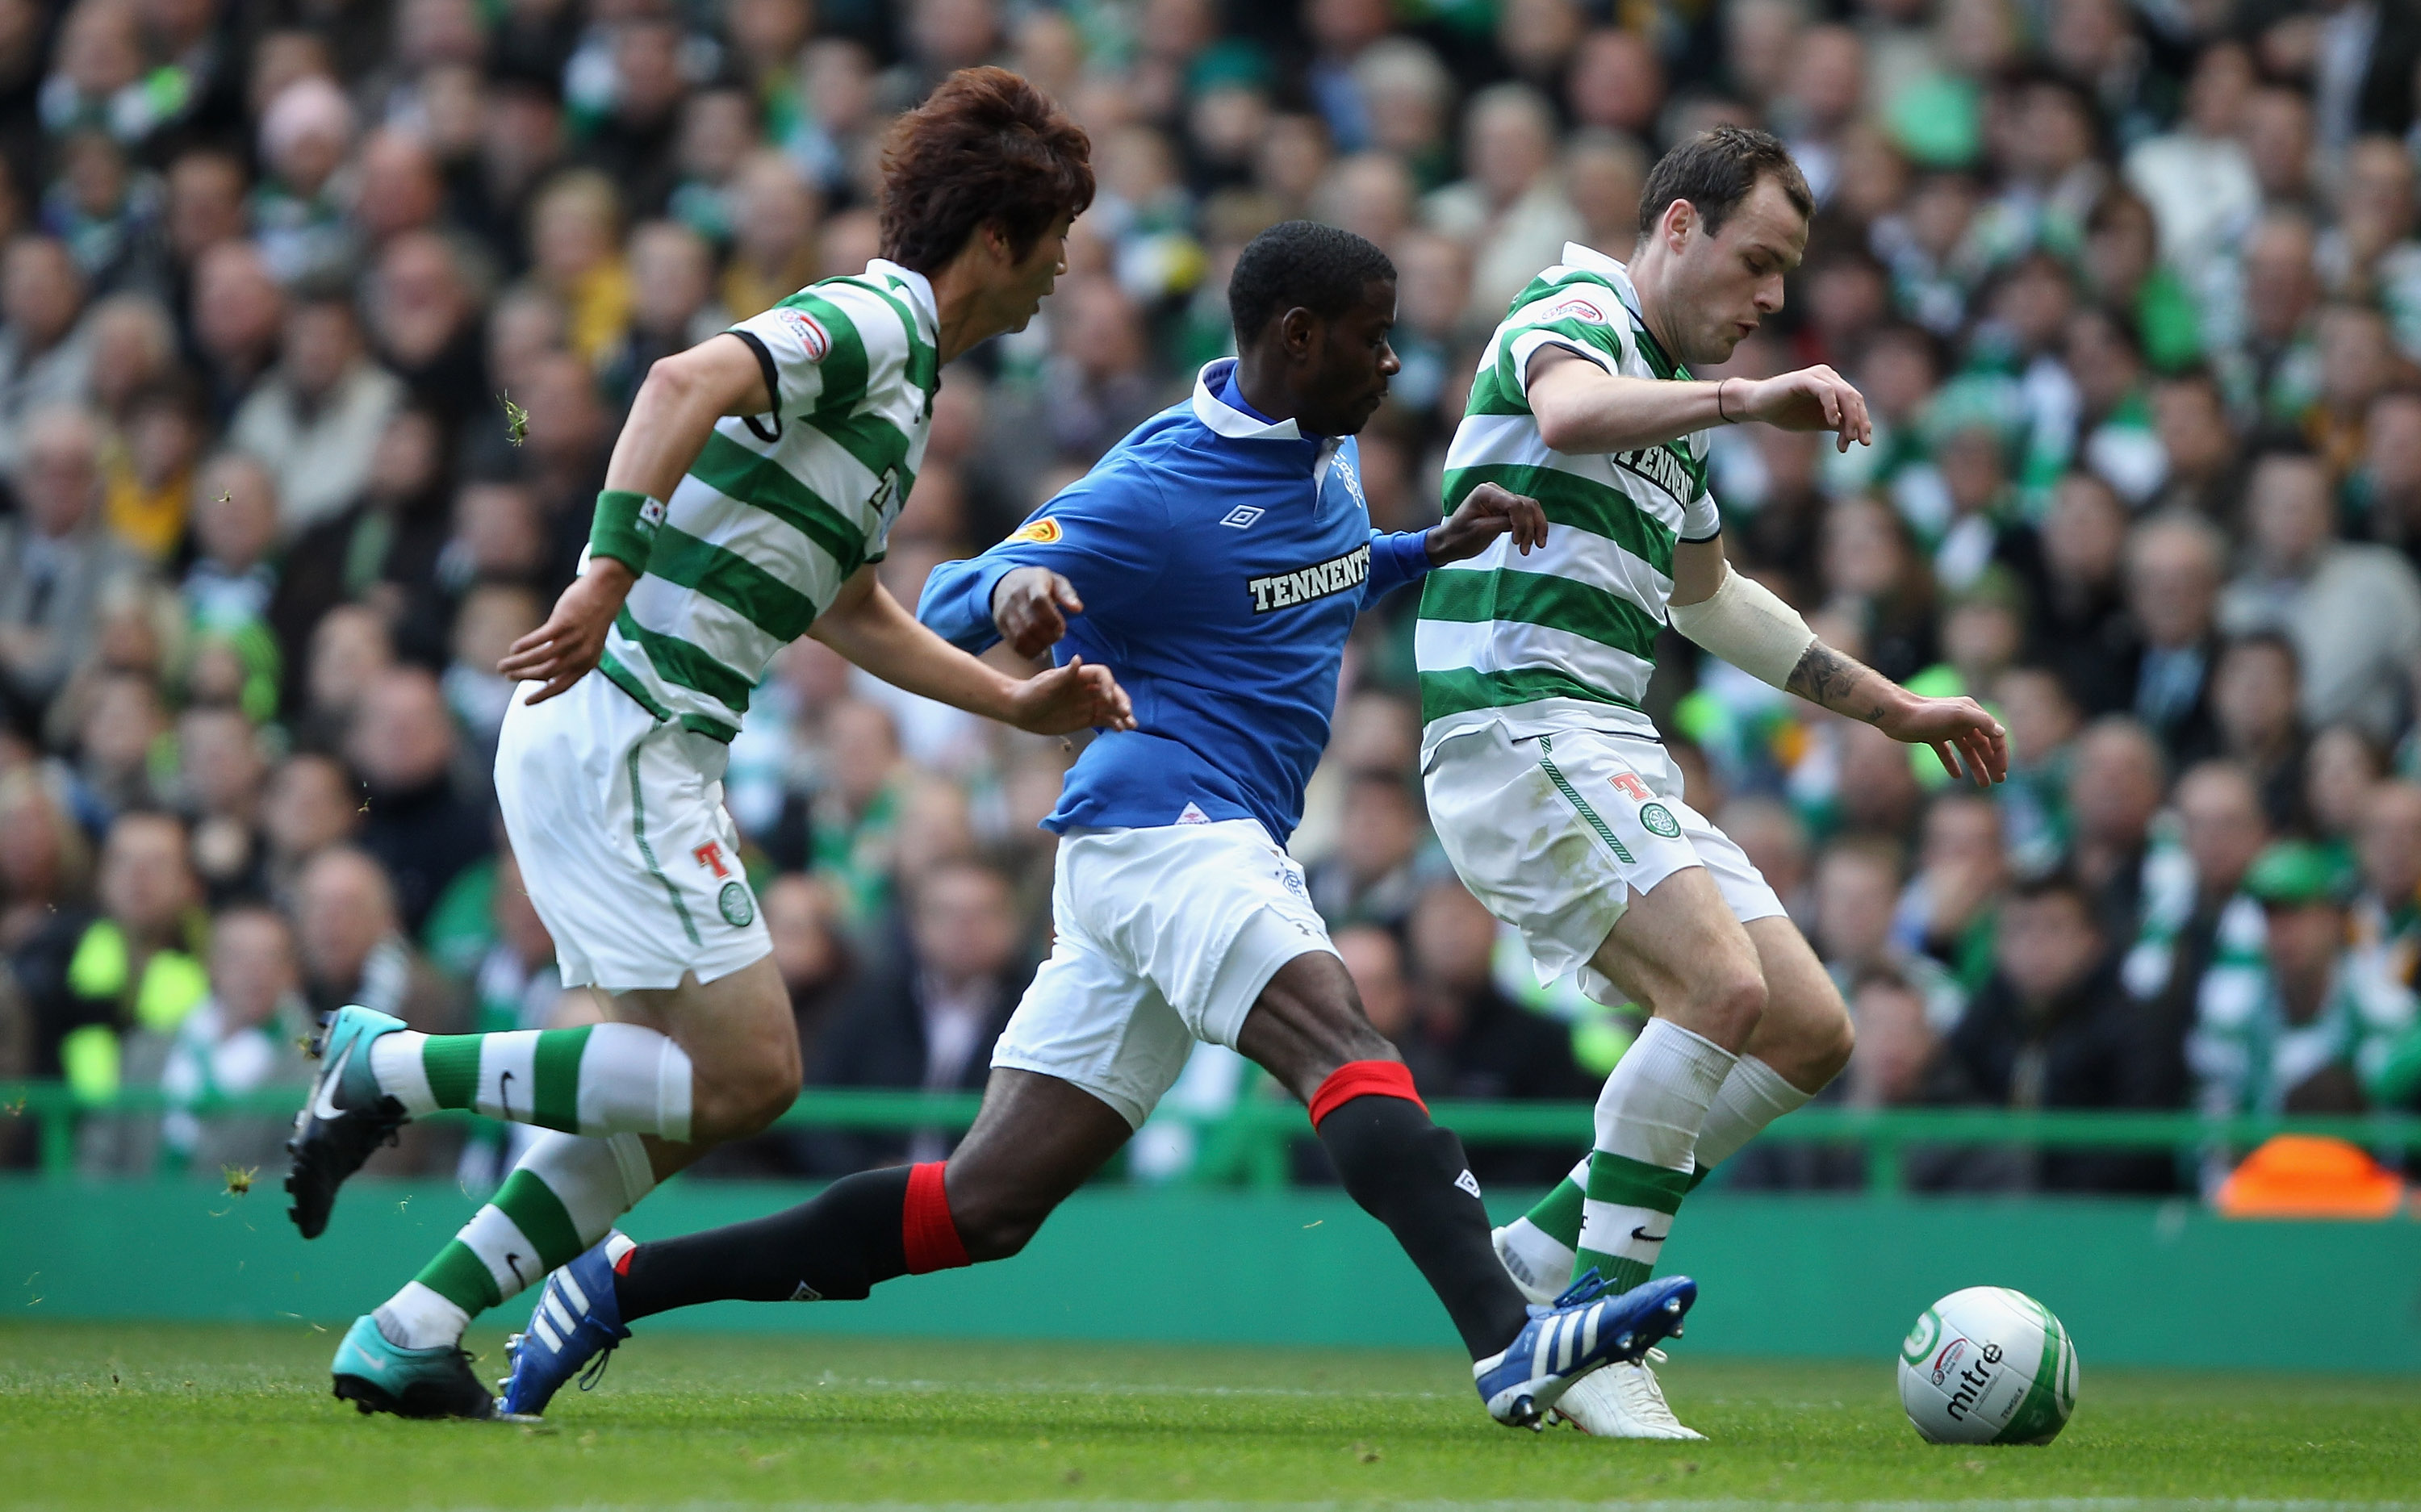 GLASGOW, SCOTLAND - OCTOBER 24:  Anthony Stokes of Celtic attempts to move away from Maurice Edu of Rangers during the Clydesdale Bank Premier League match between Celtic and Rangers at Celtic Park on October 24, 2010 in Glasgow, Scotland.  (Photo by Cliv